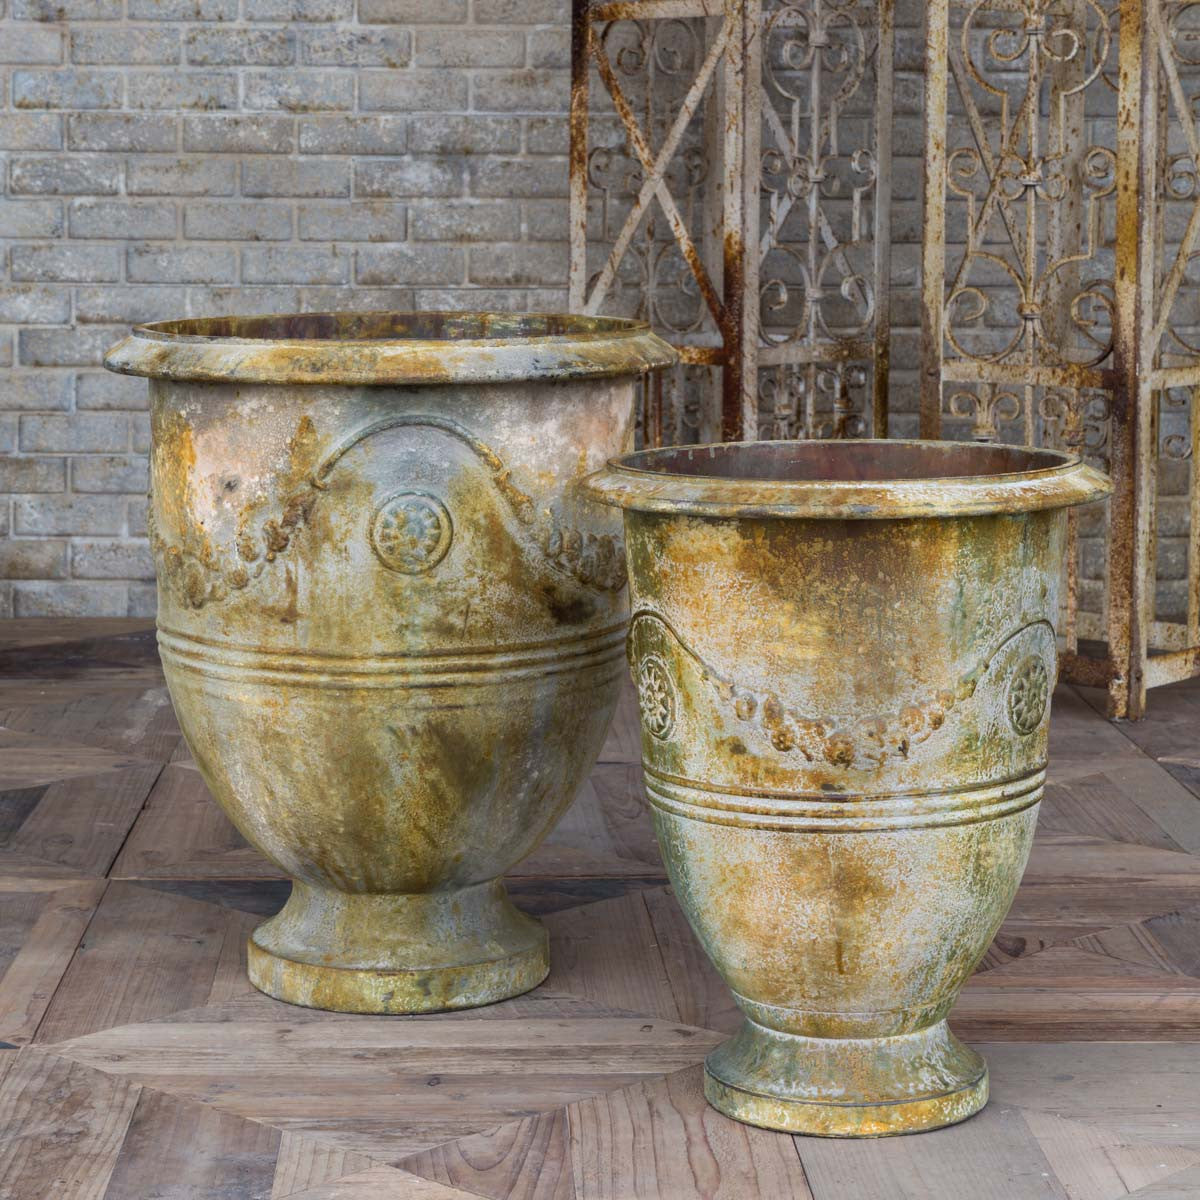 faux metal estate planters for sale, Restoration hardware garden planters for sale